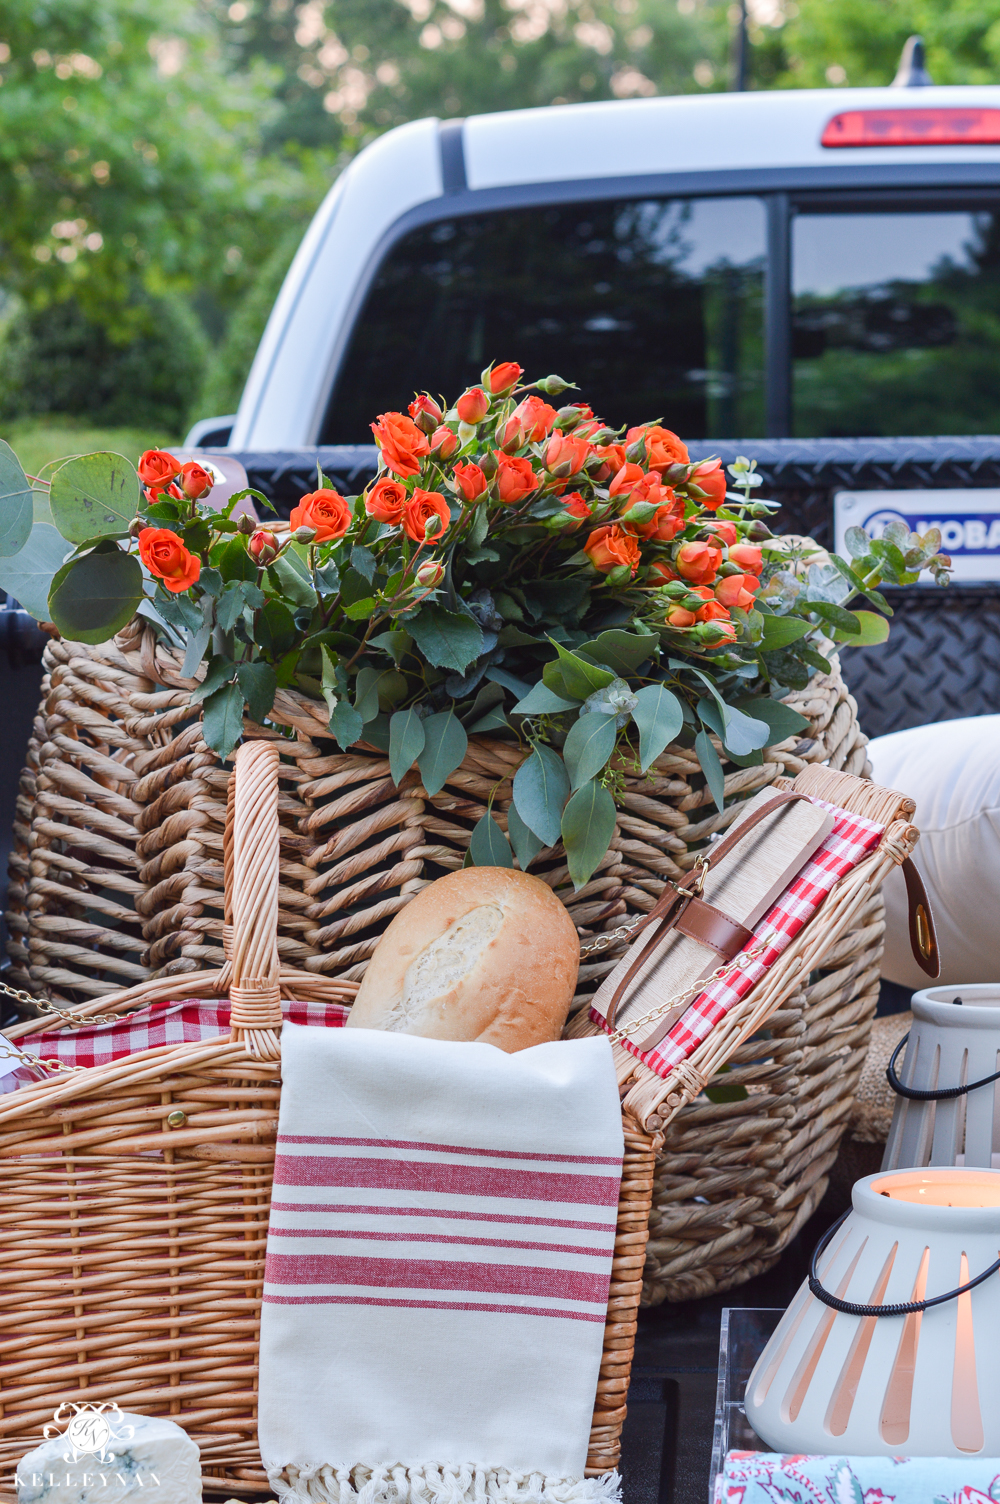 Picnic and Tailgate Ideas and Setup-picnic basket with flowers for fancy tailgate